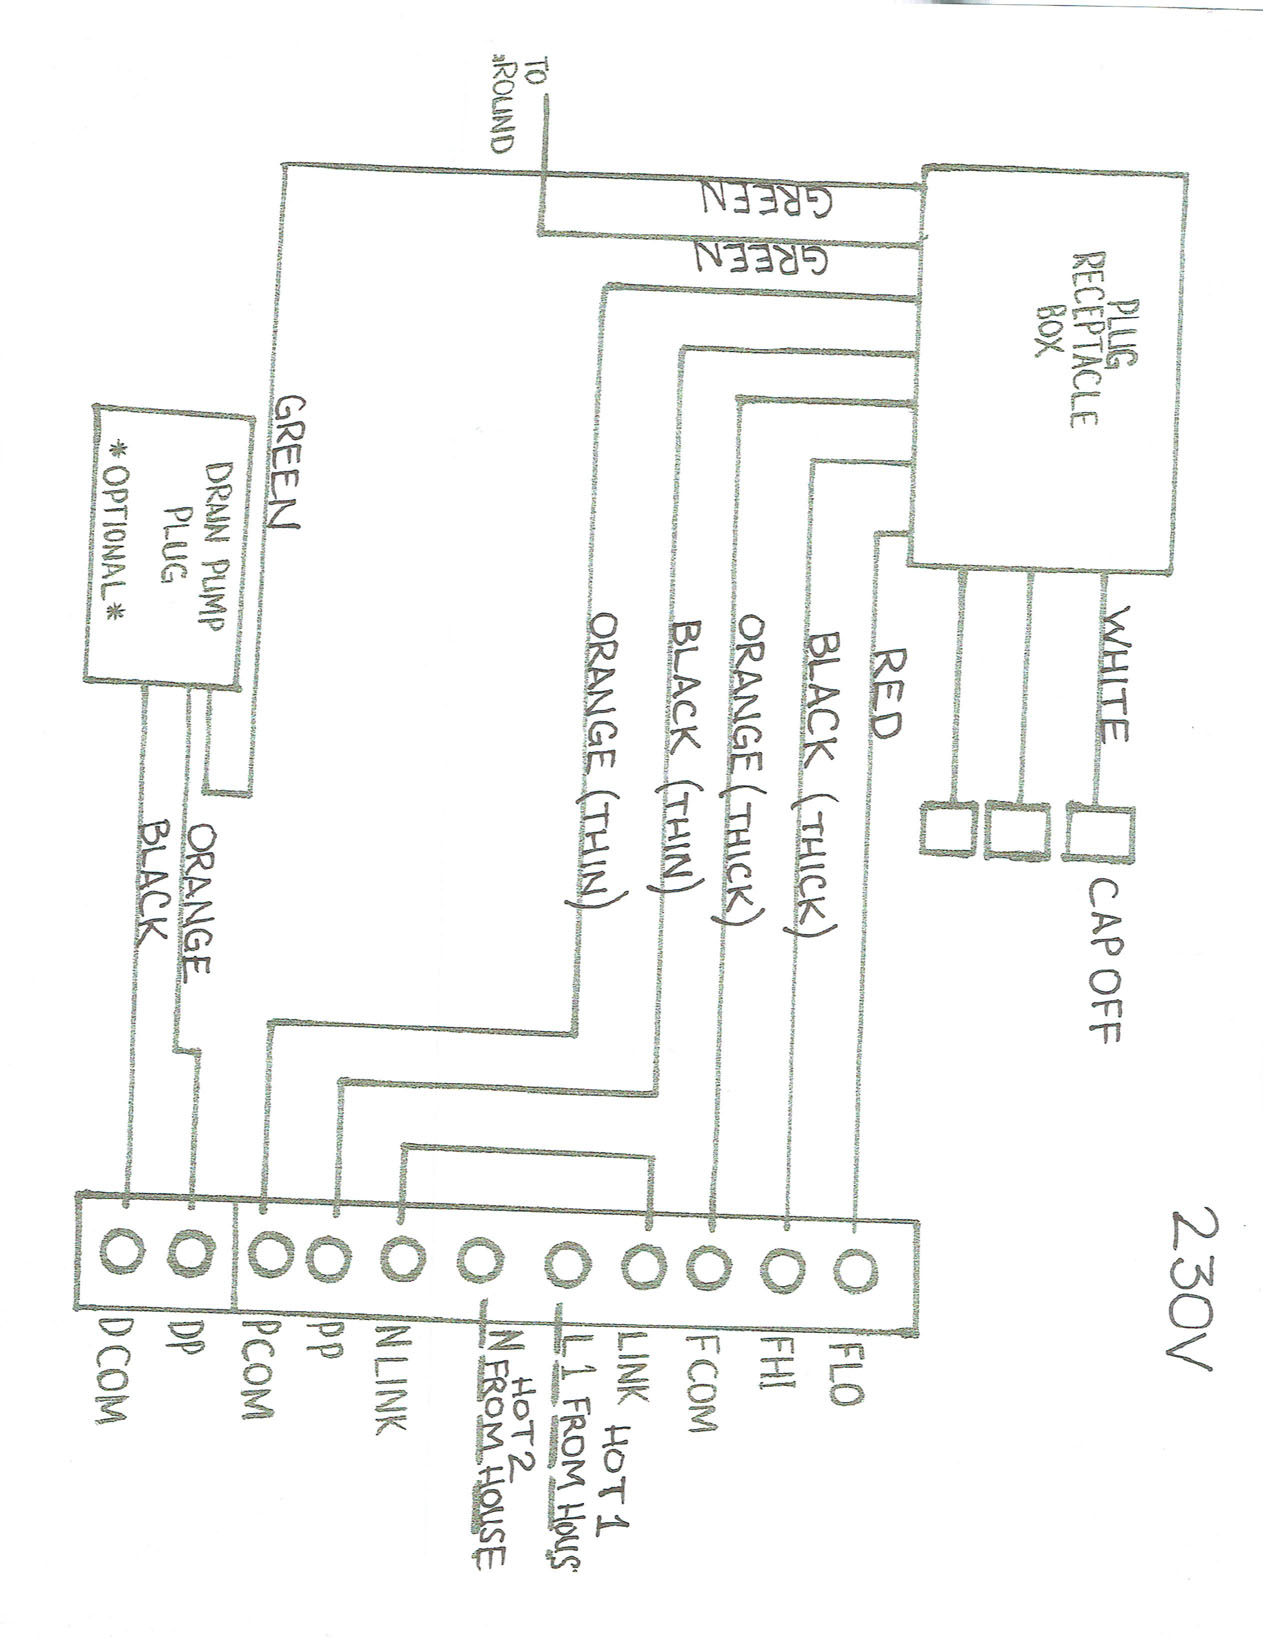 Mastercool Thermostat Wiring Diagram : 36 Wiring Diagram